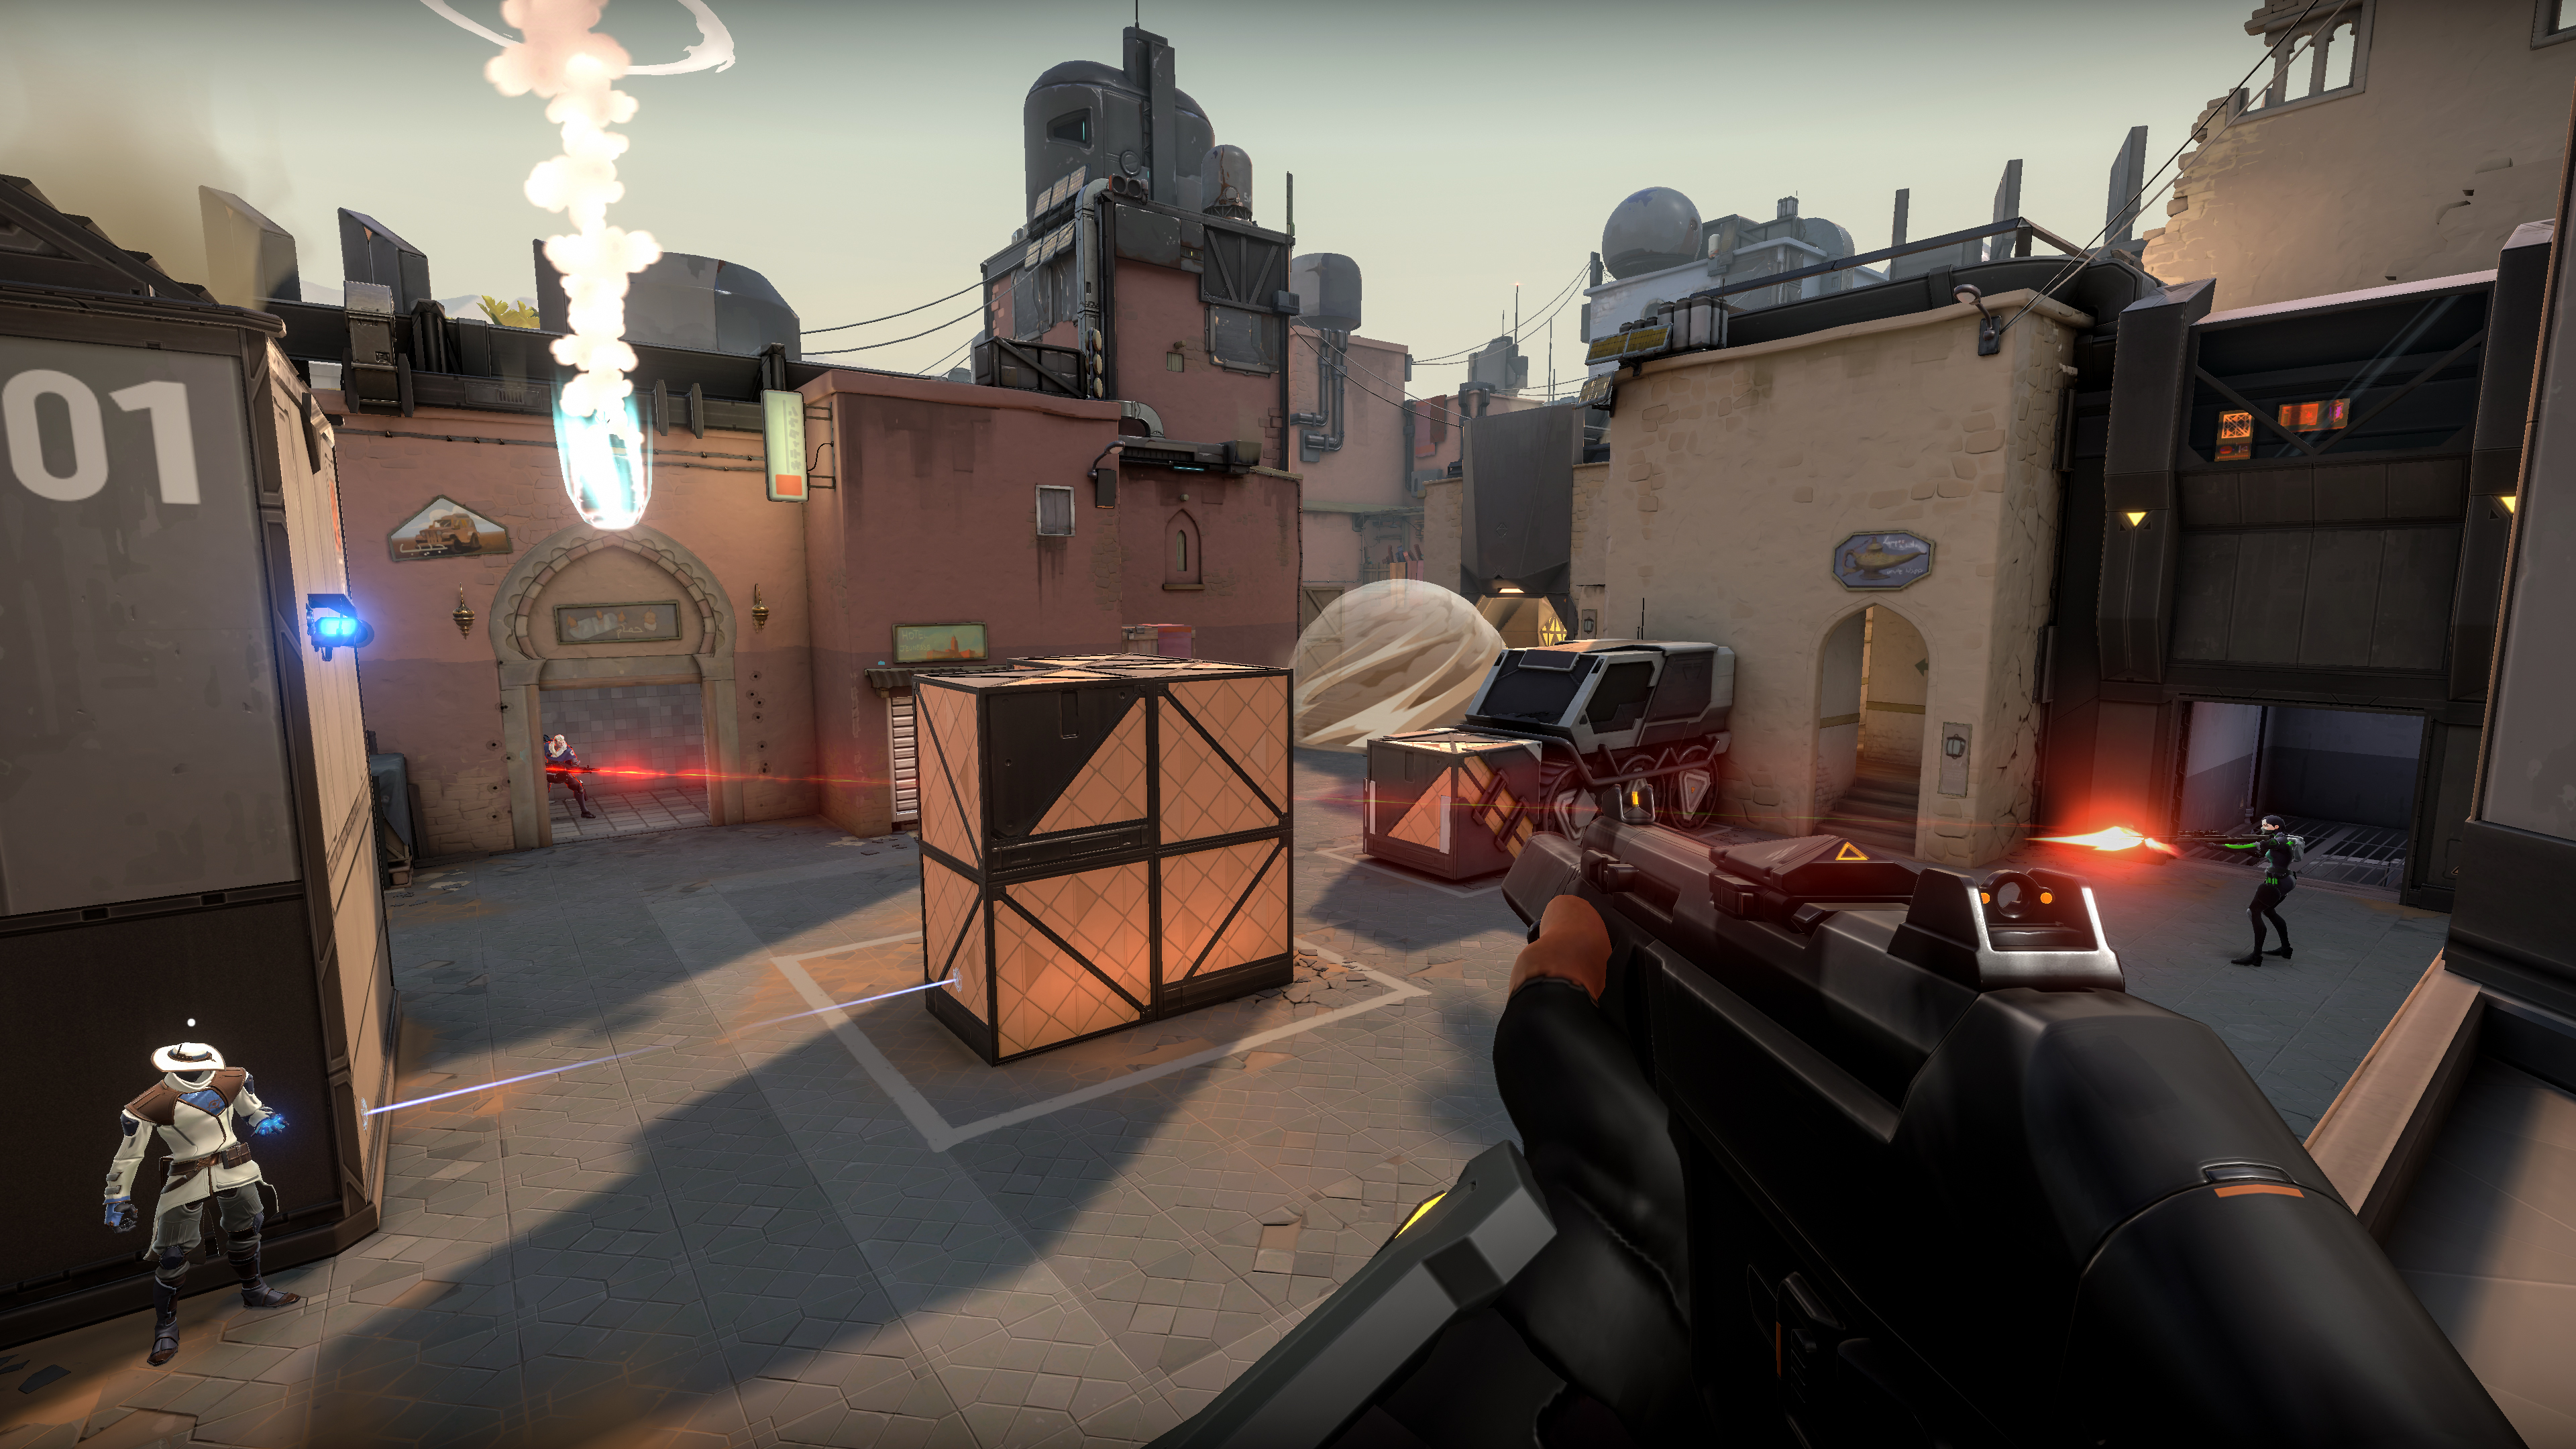 4 players using smokes and other gadgets during a Valorant match